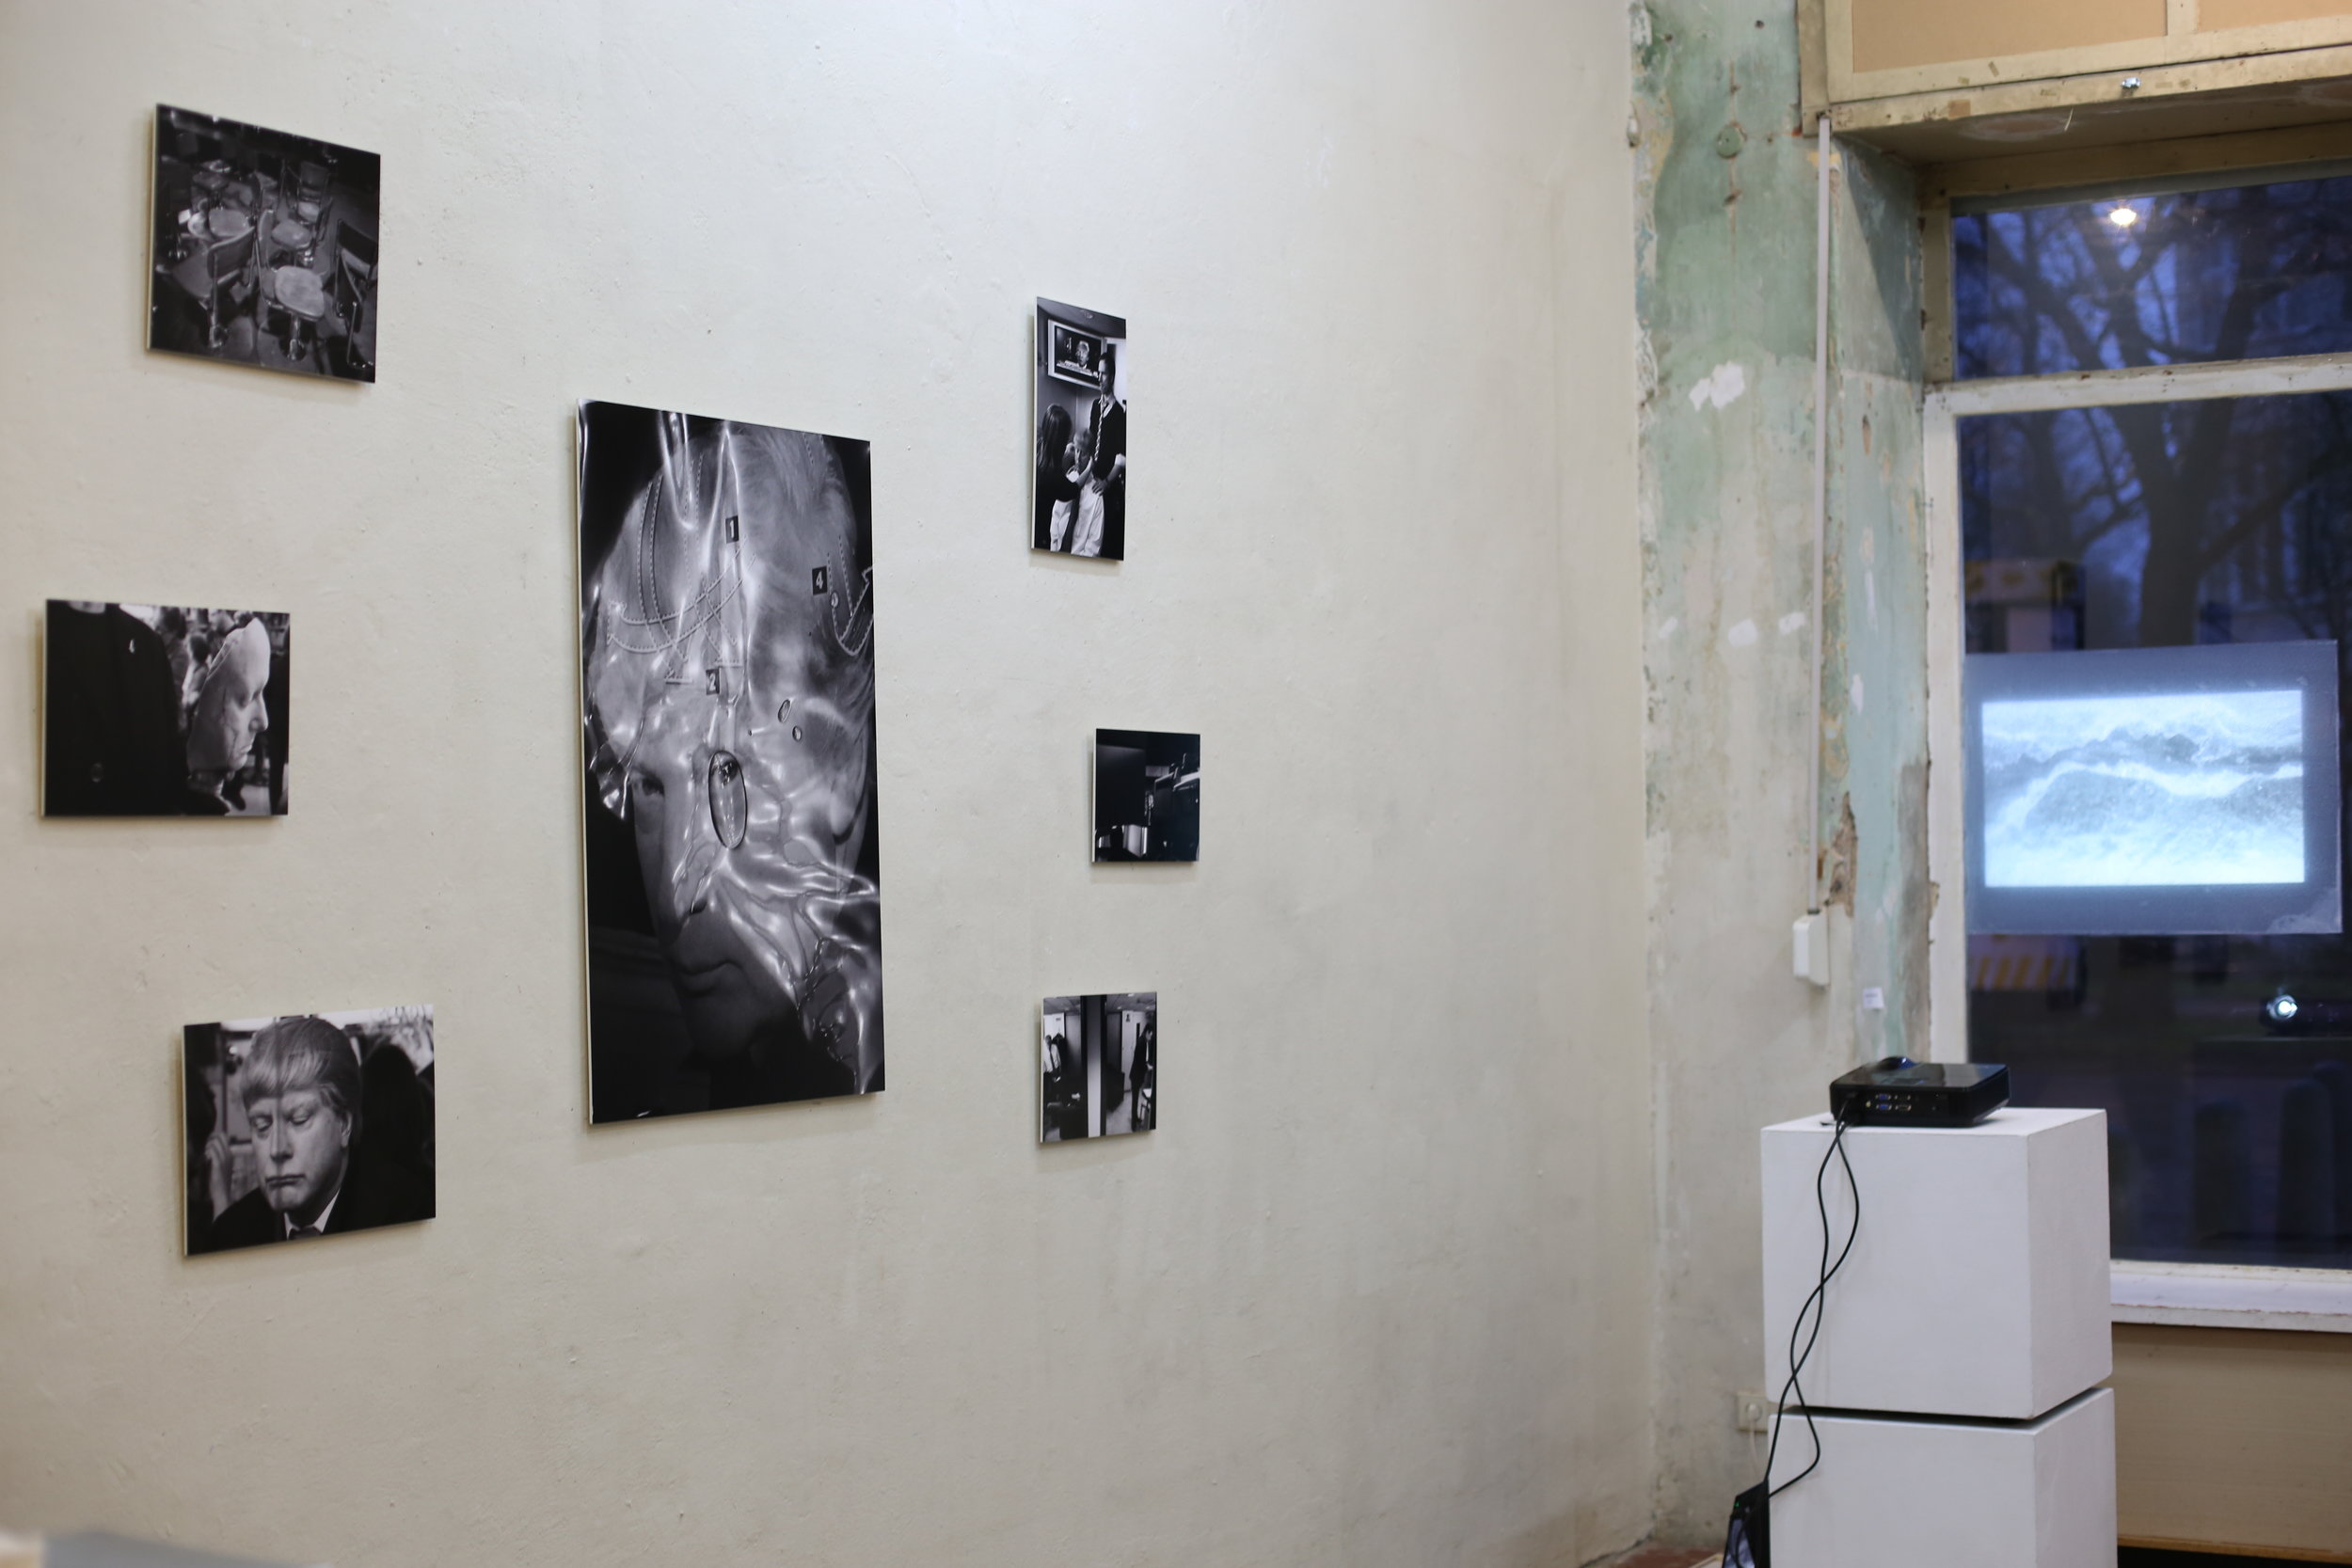 Right: Dissolve by  Katarina Murto   Left: Disturbed by Ayala Gazit dis- Group exhibition co-curated with  Katarina Murto  March 2017 at  tête  Berlin